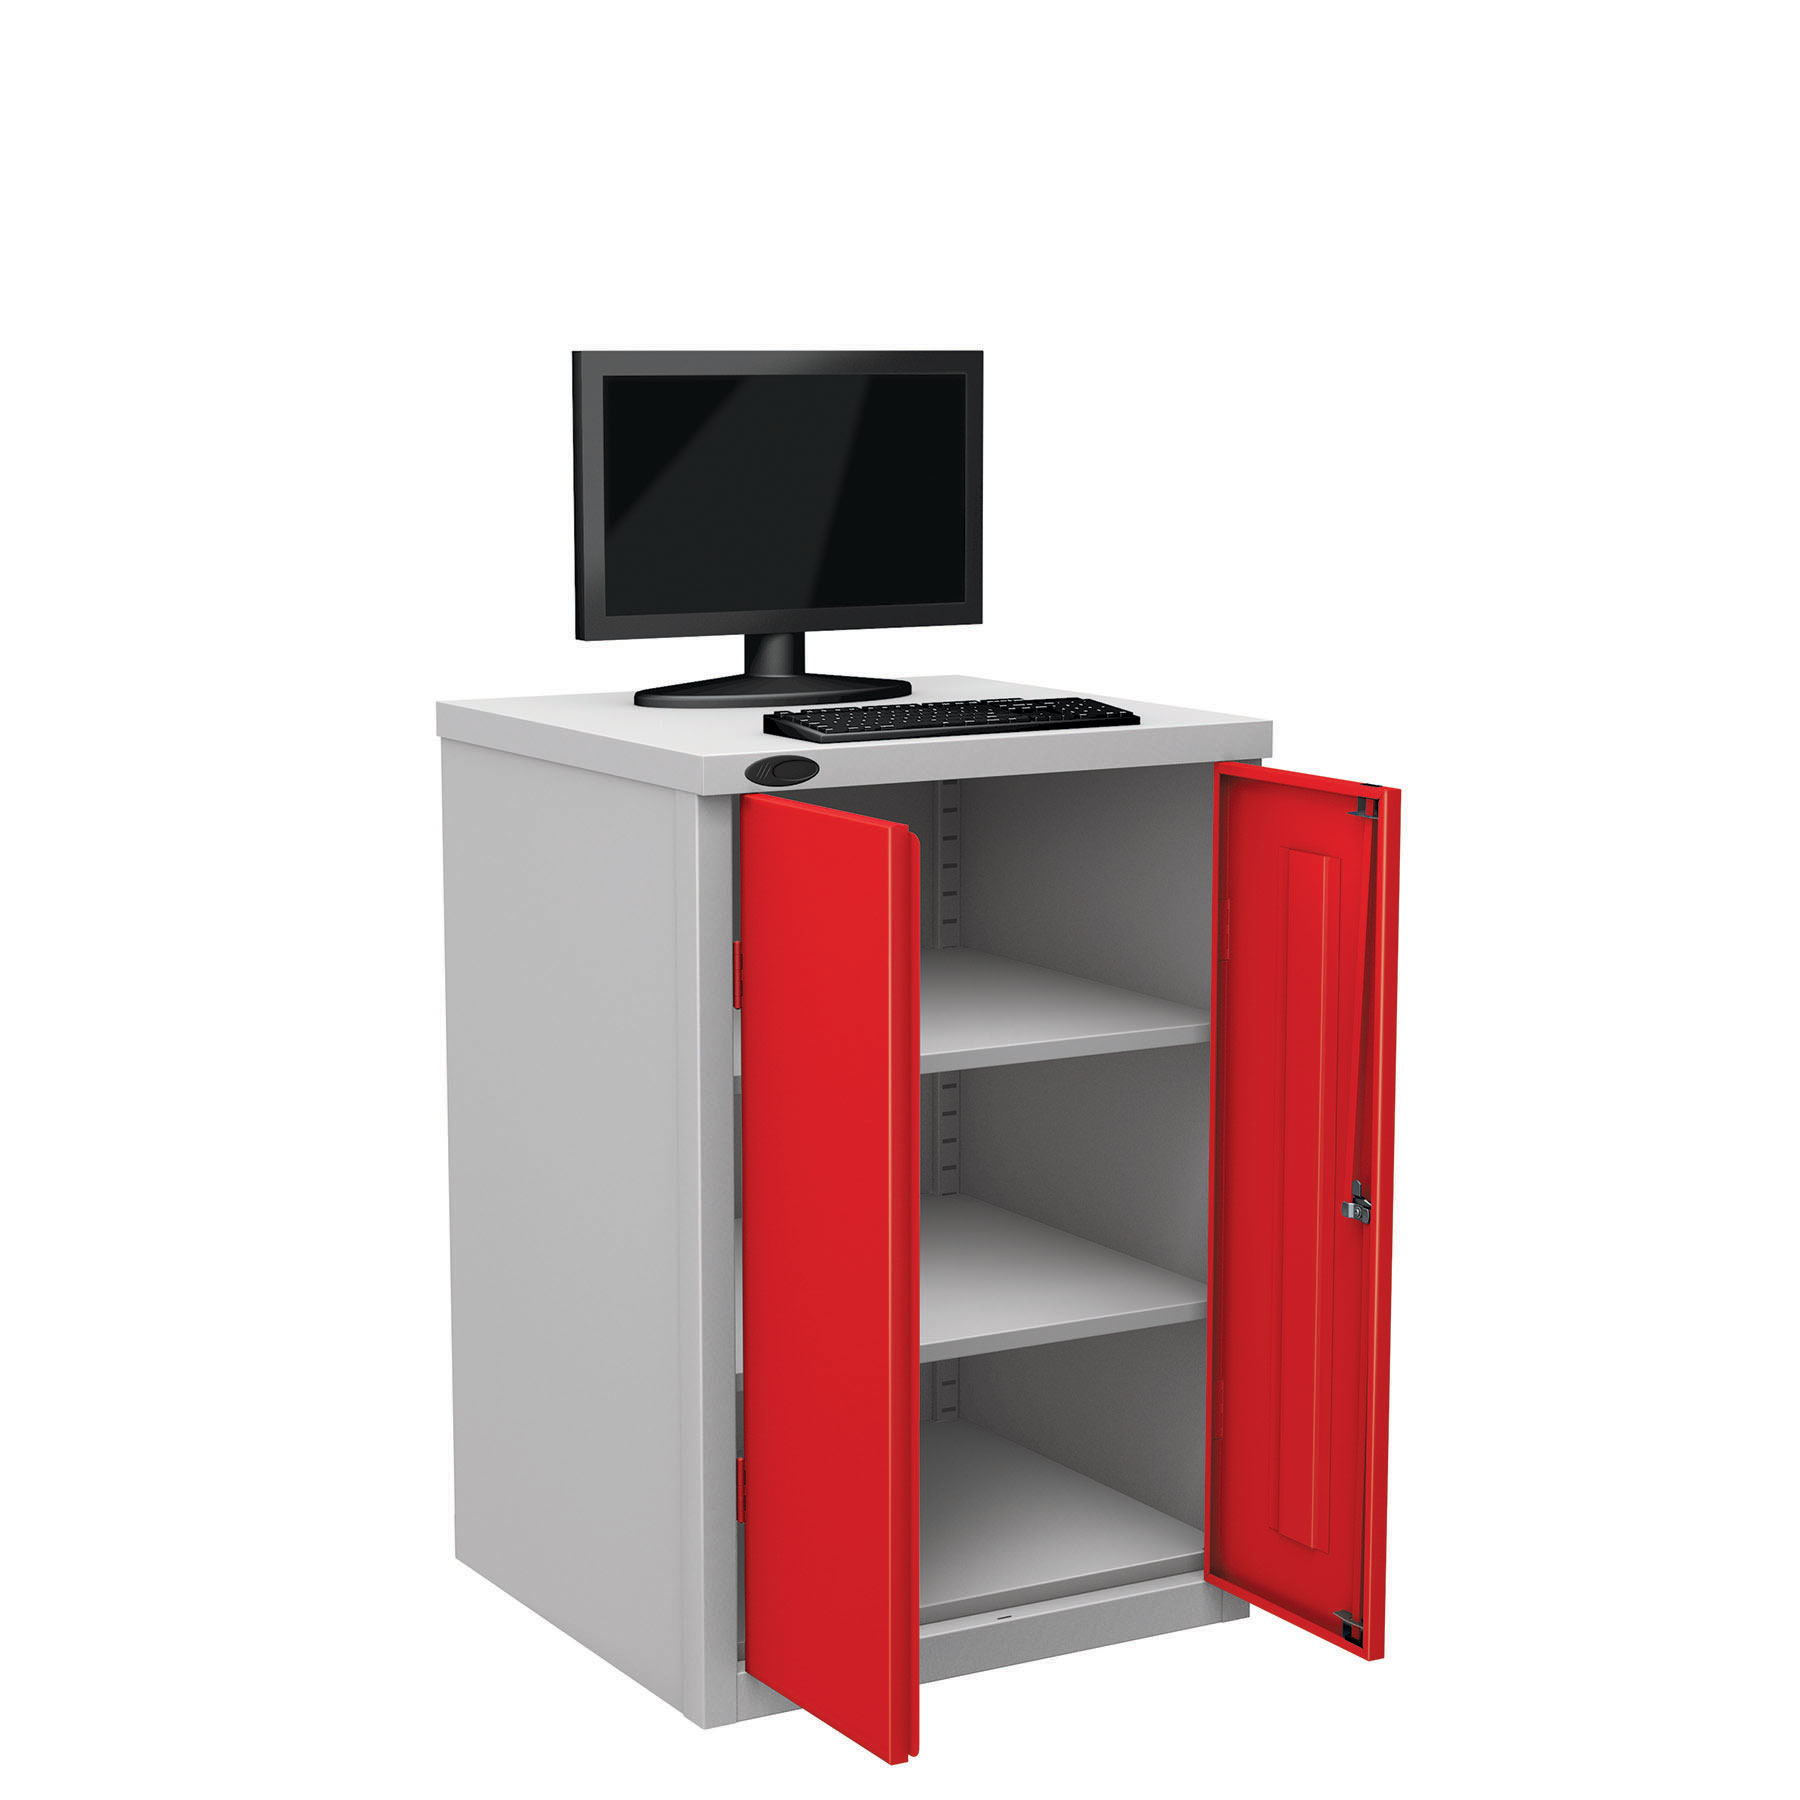 Probe workstation base monitor red